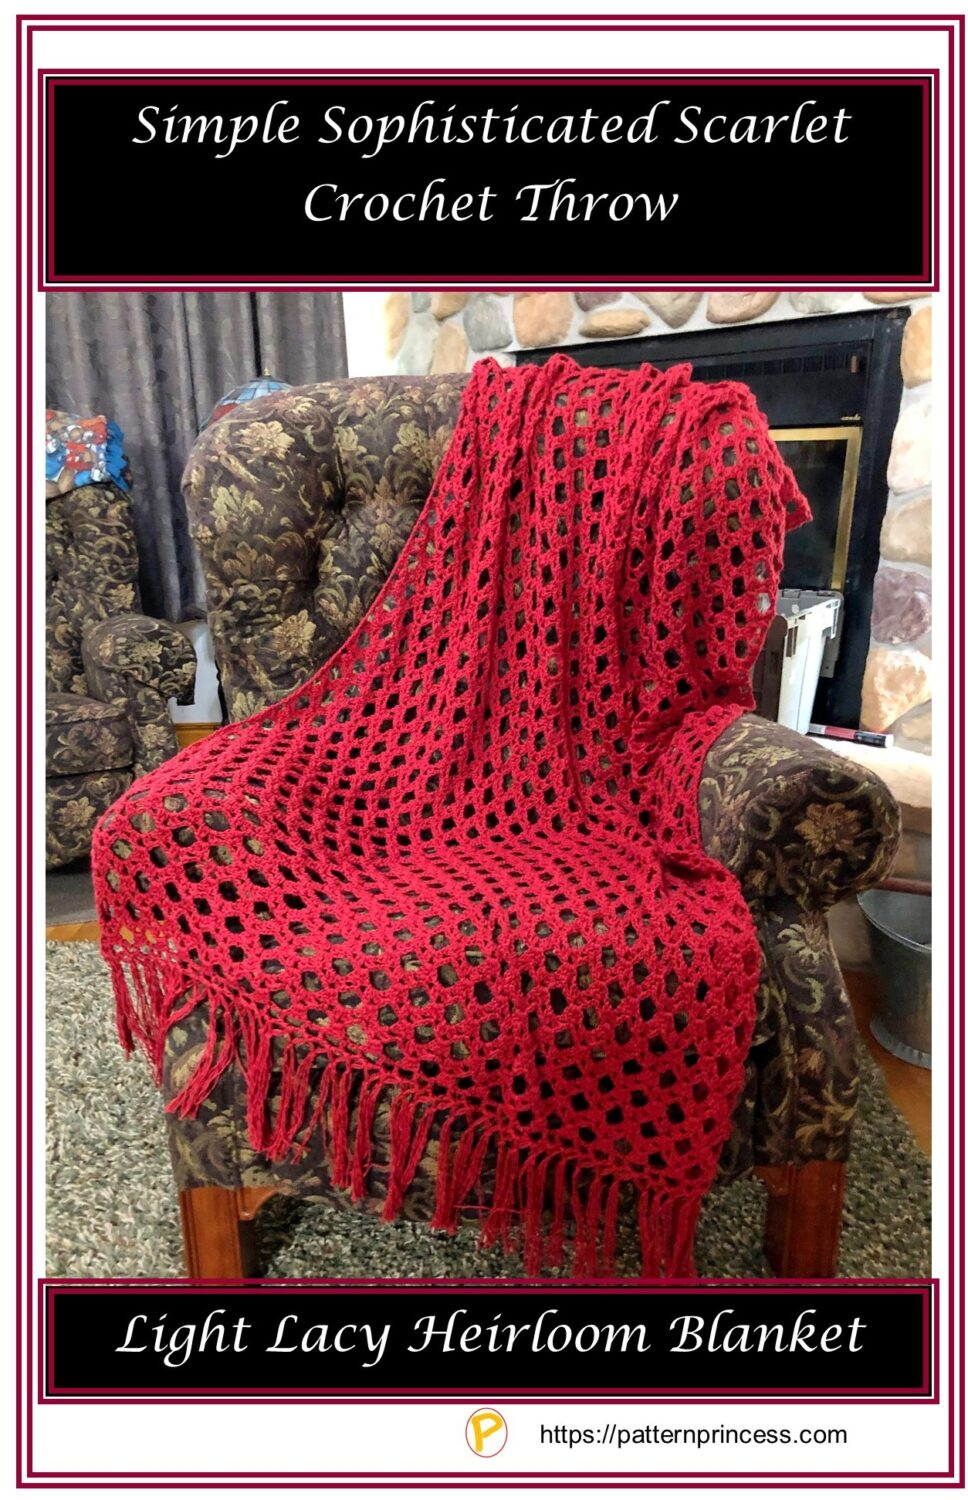 Simple Sophisticated Scarlet Crochet Throw